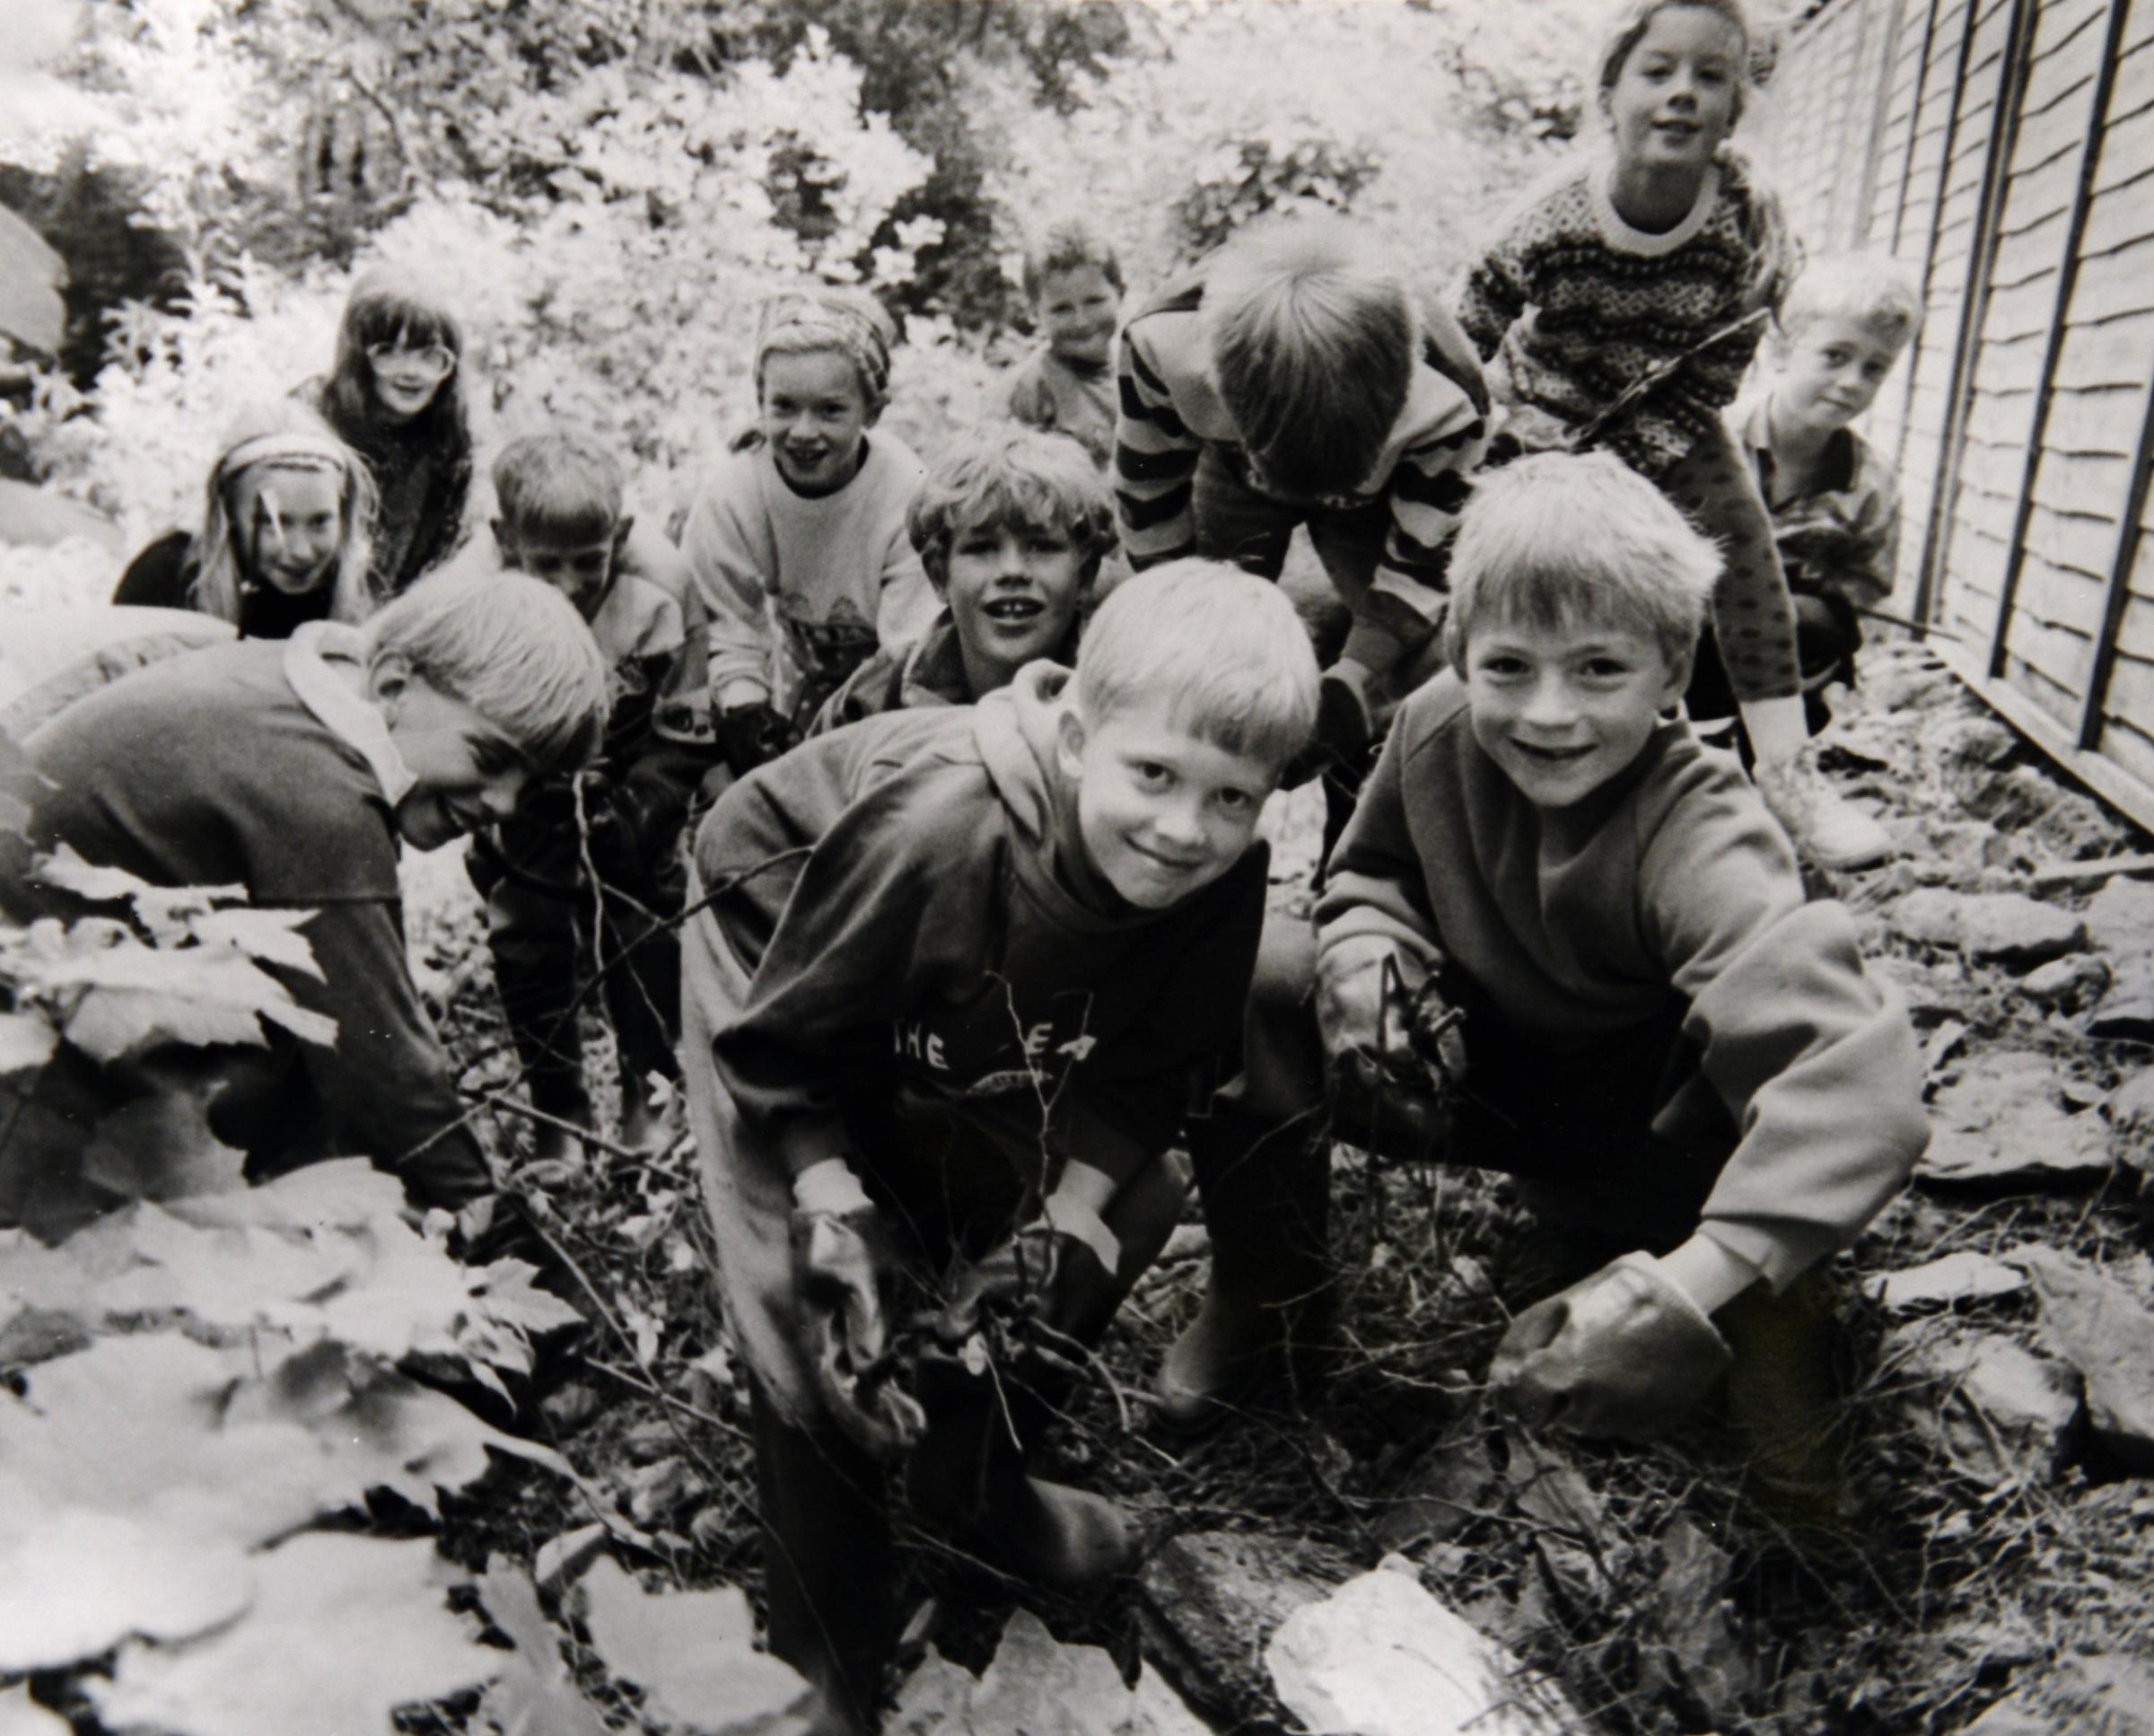 Arkholme Primary School pupils in 1994